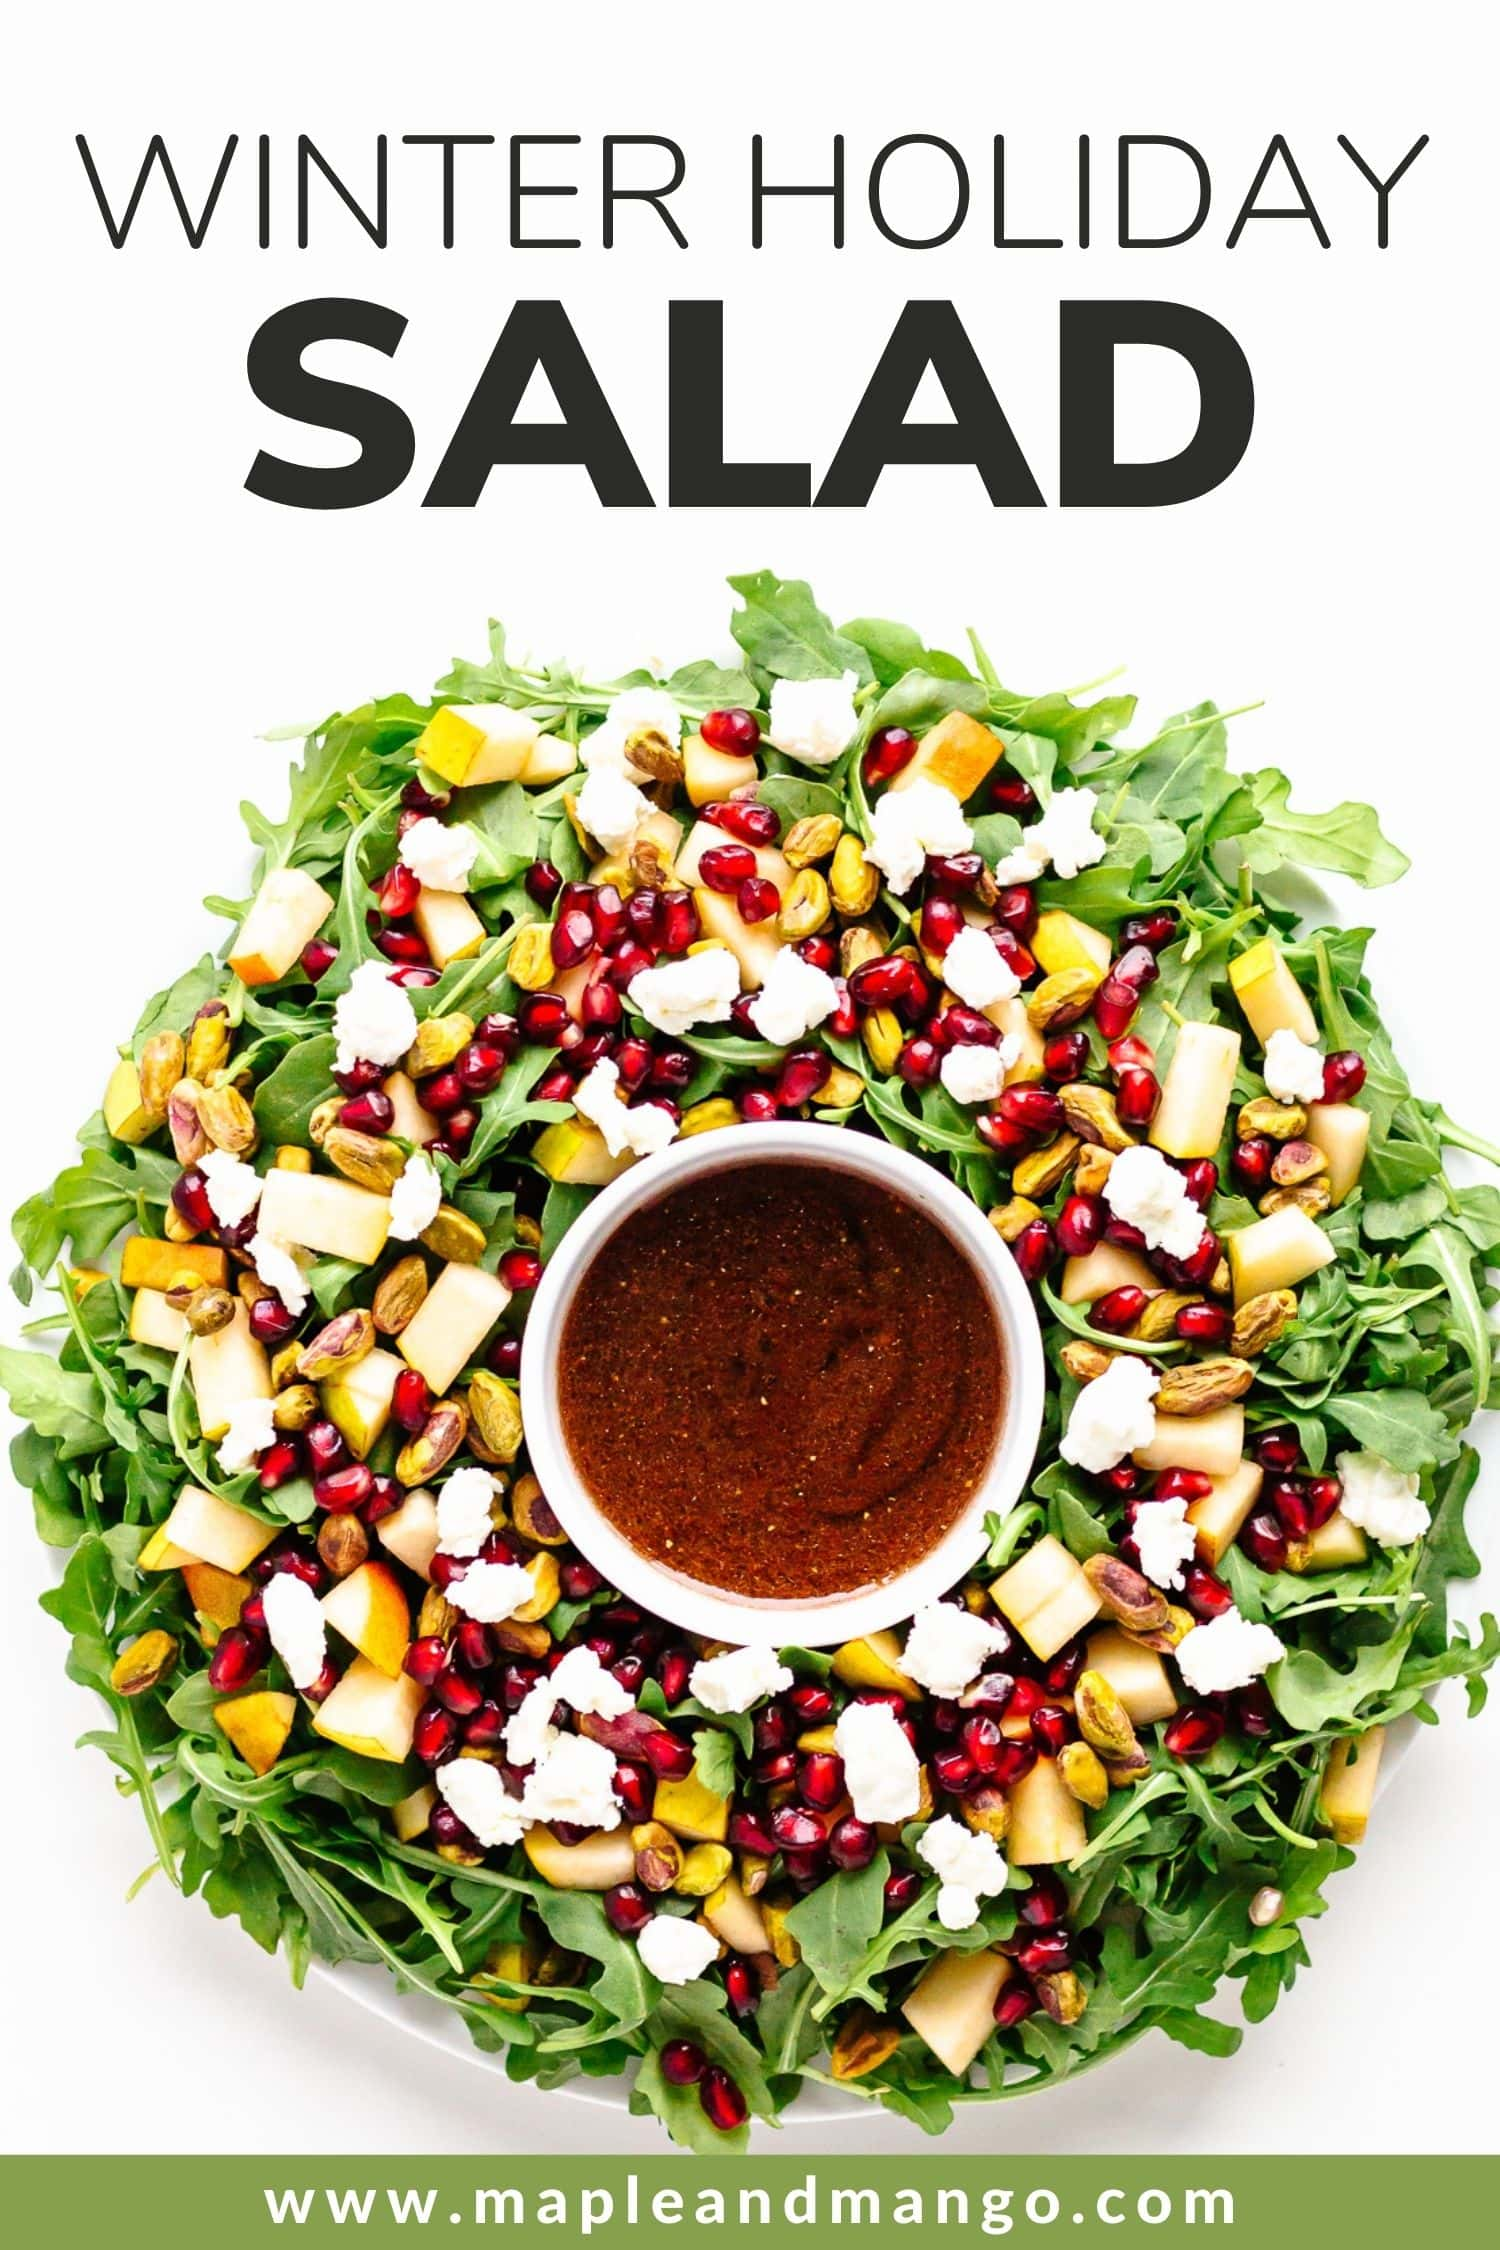 """Overhead photo of a Christmas wreath salad with text overlay """"Winter Holiday Salad"""""""